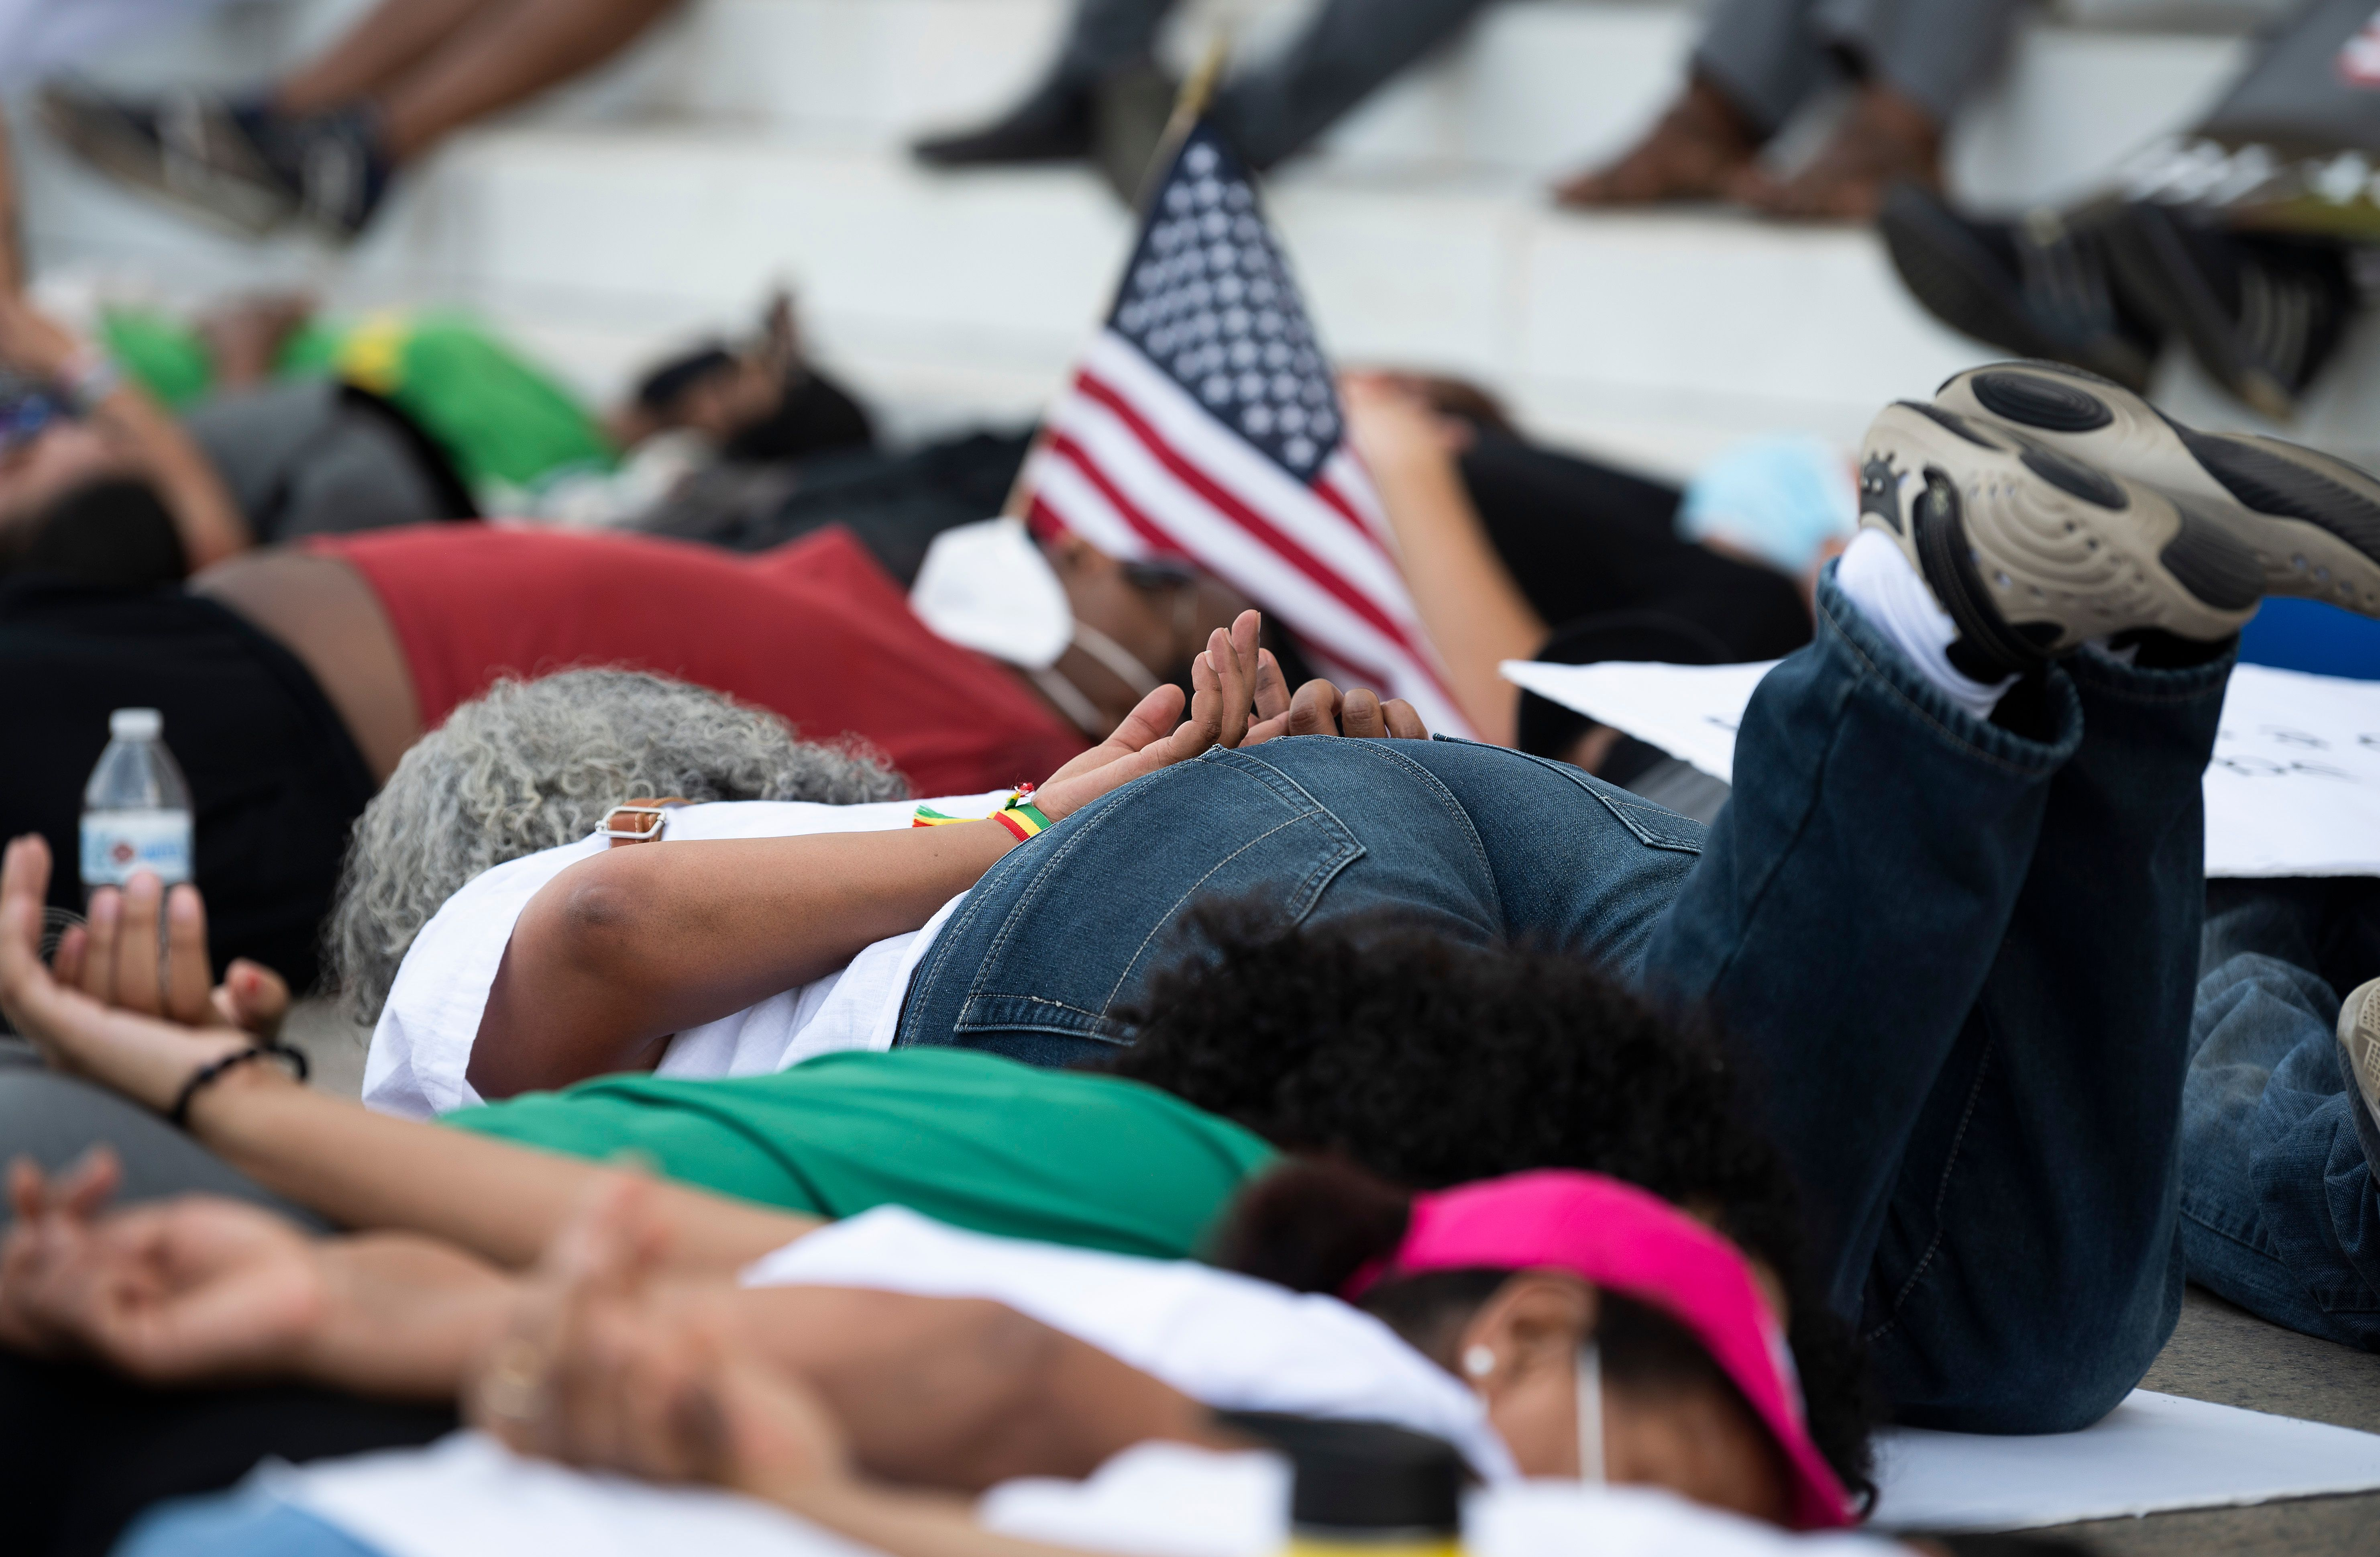 Protesters demonstrate the death of George Floyd at the Lincoln Memorial on June 9 in Washington, DC.